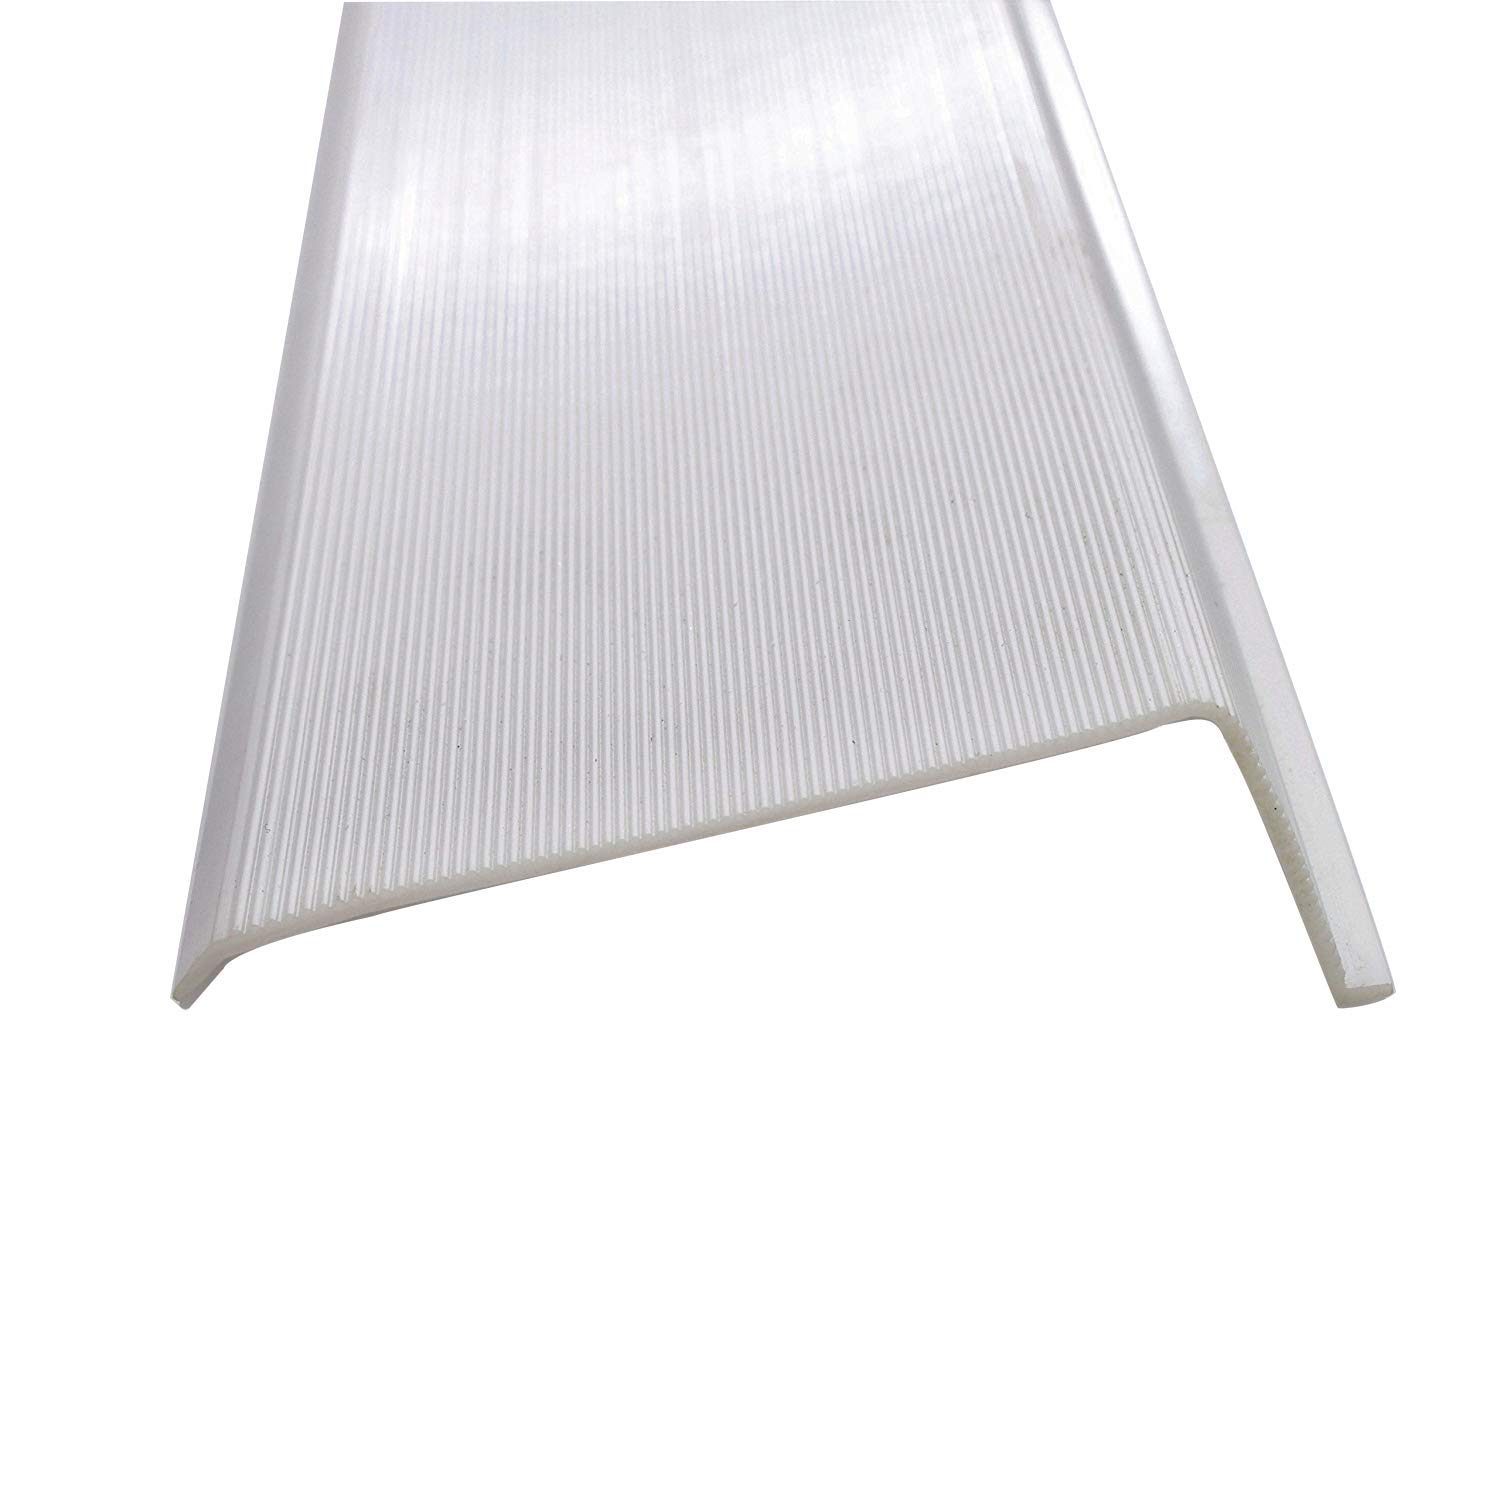 12'' Inch Under Cabinet Diffuser White Ribbed Replacement Cover Lens